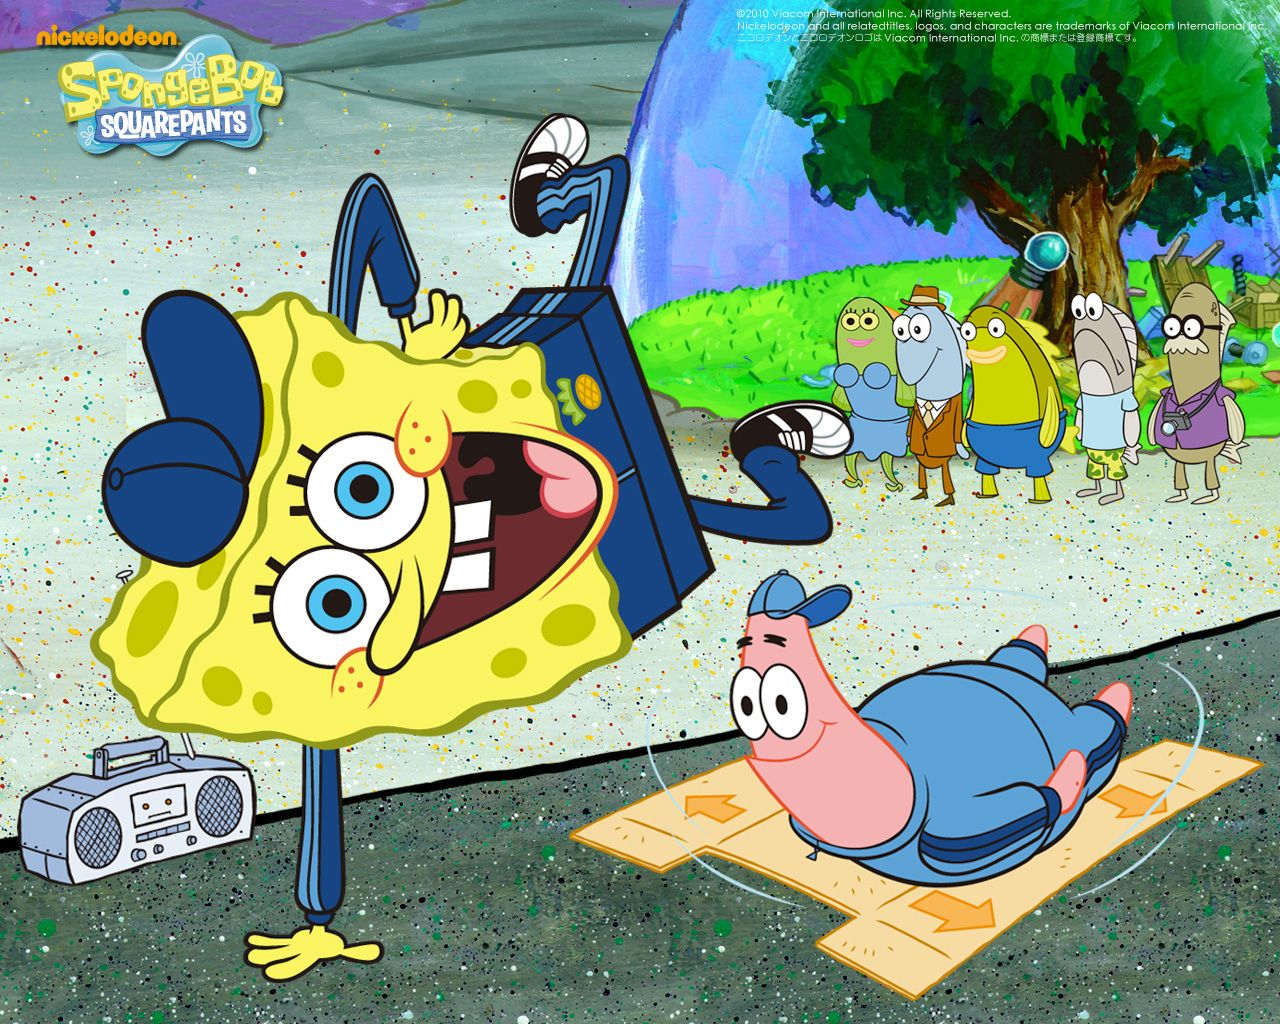 street dancing spongebob squarepants wallpaper bg wallpaper